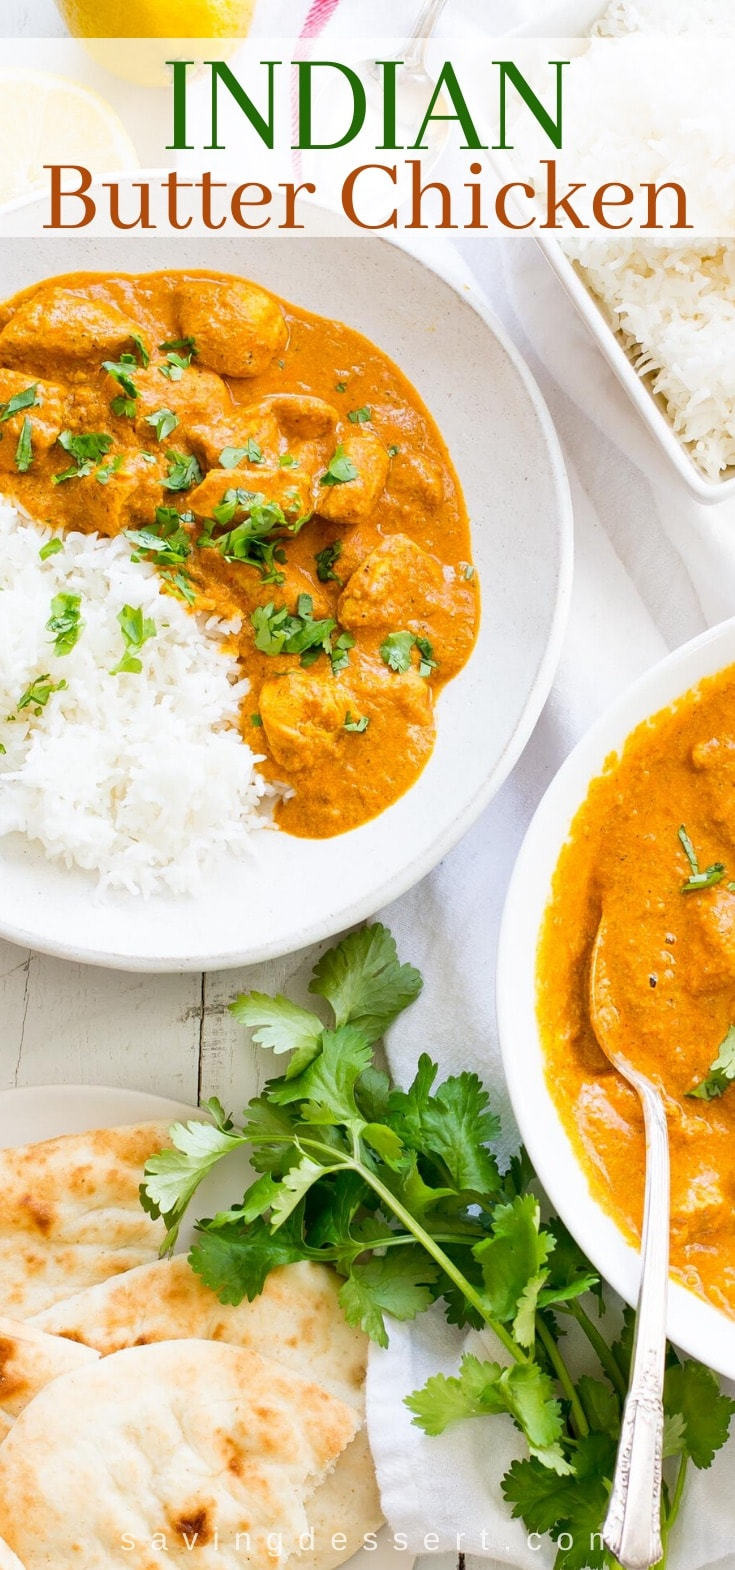 Bowls of Indian Butter Chicken with rice and Naan bread